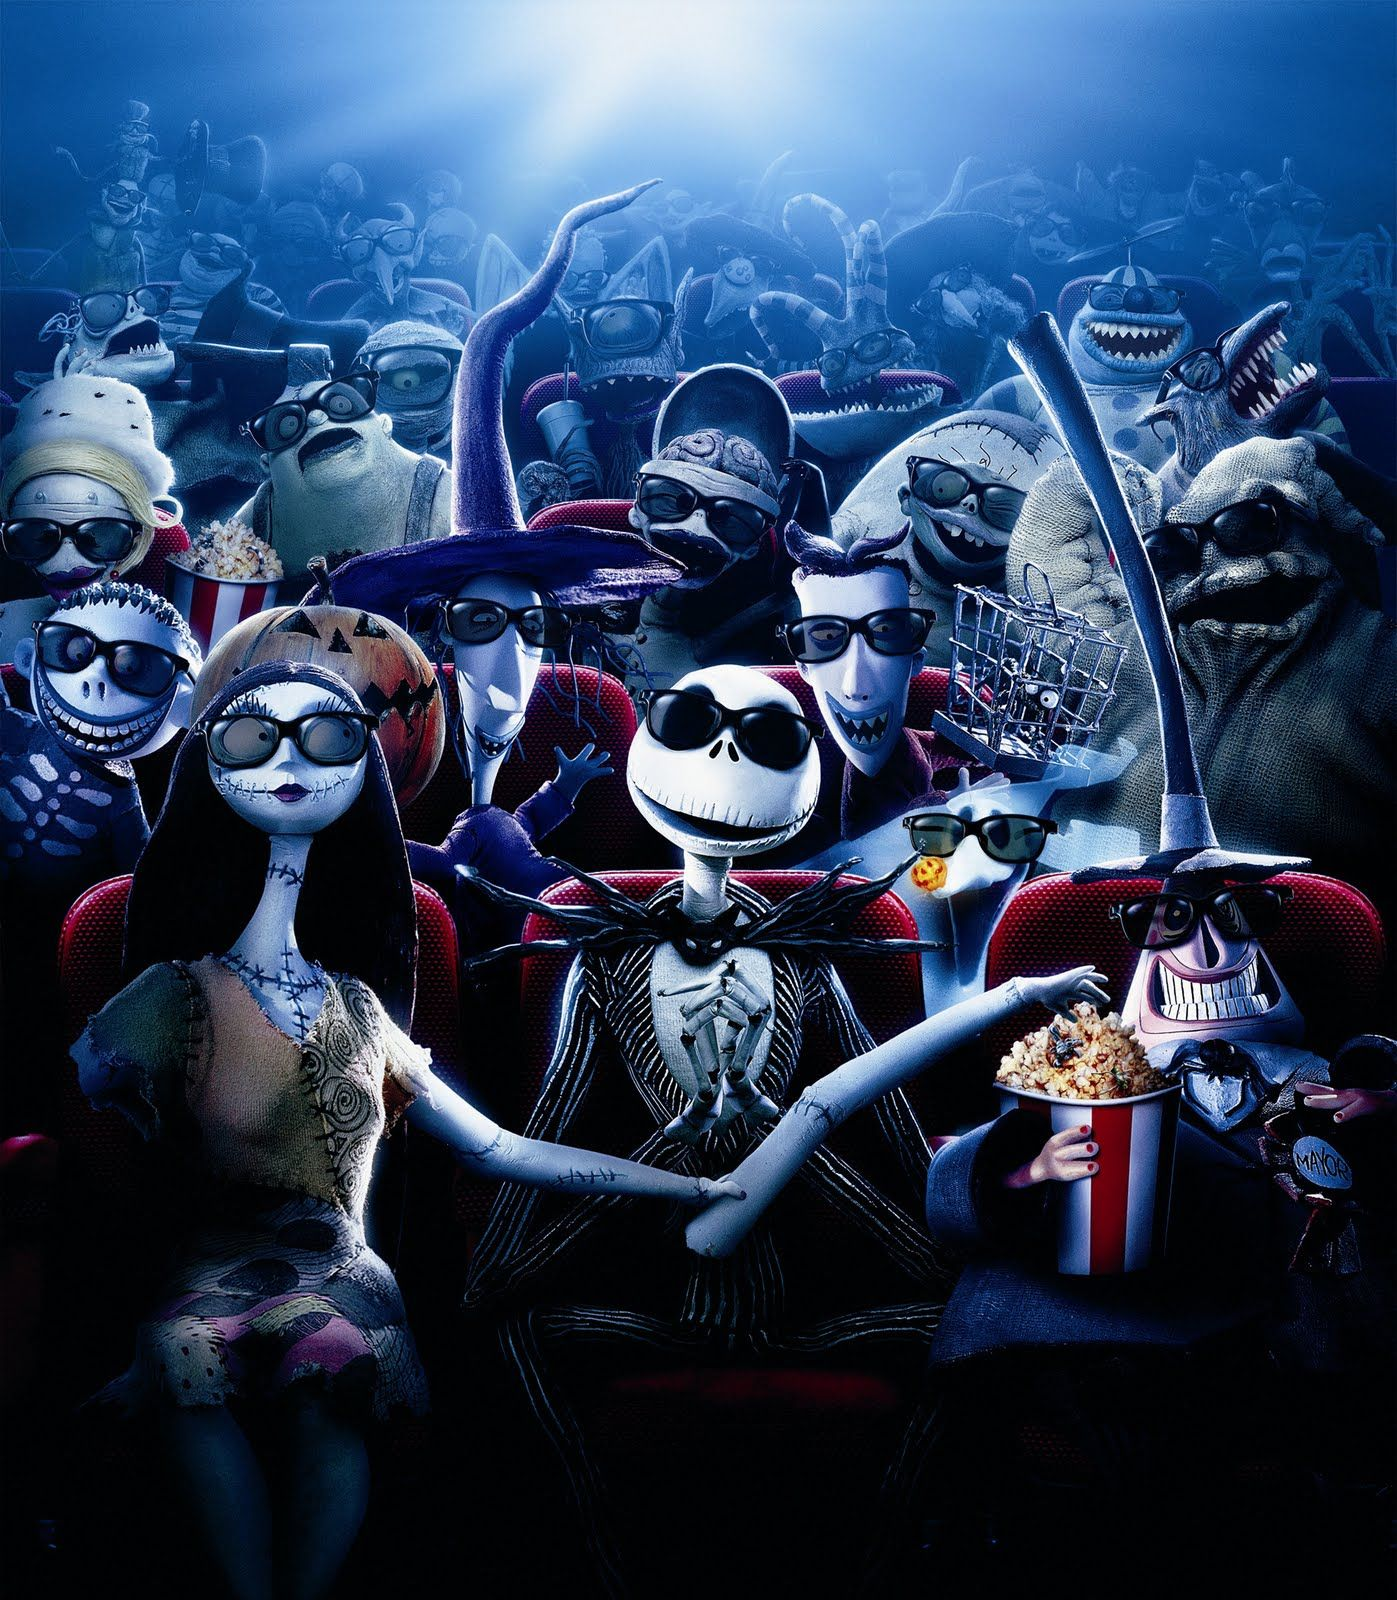 Jack and friends, from The Nightmare Before Christmas